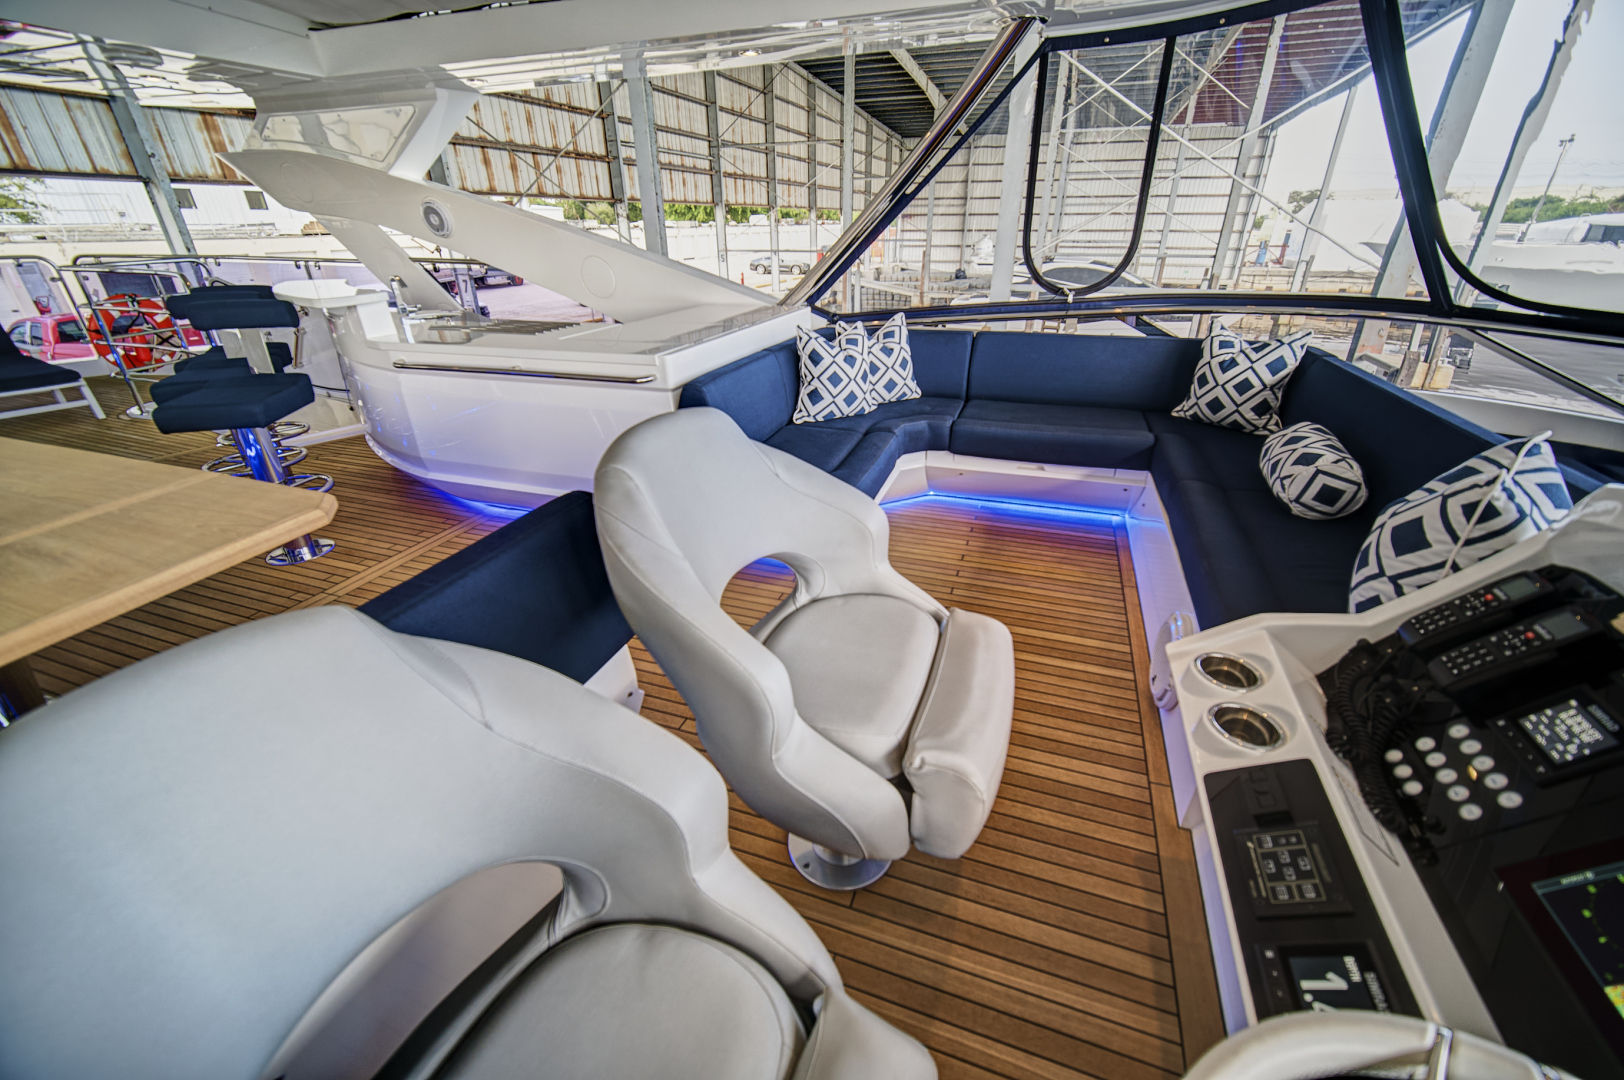 Sunseeker-86 Yacht 2019-Its Noon Somewhere Fort Lauderdale-Florida-United States-1556663 | Thumbnail